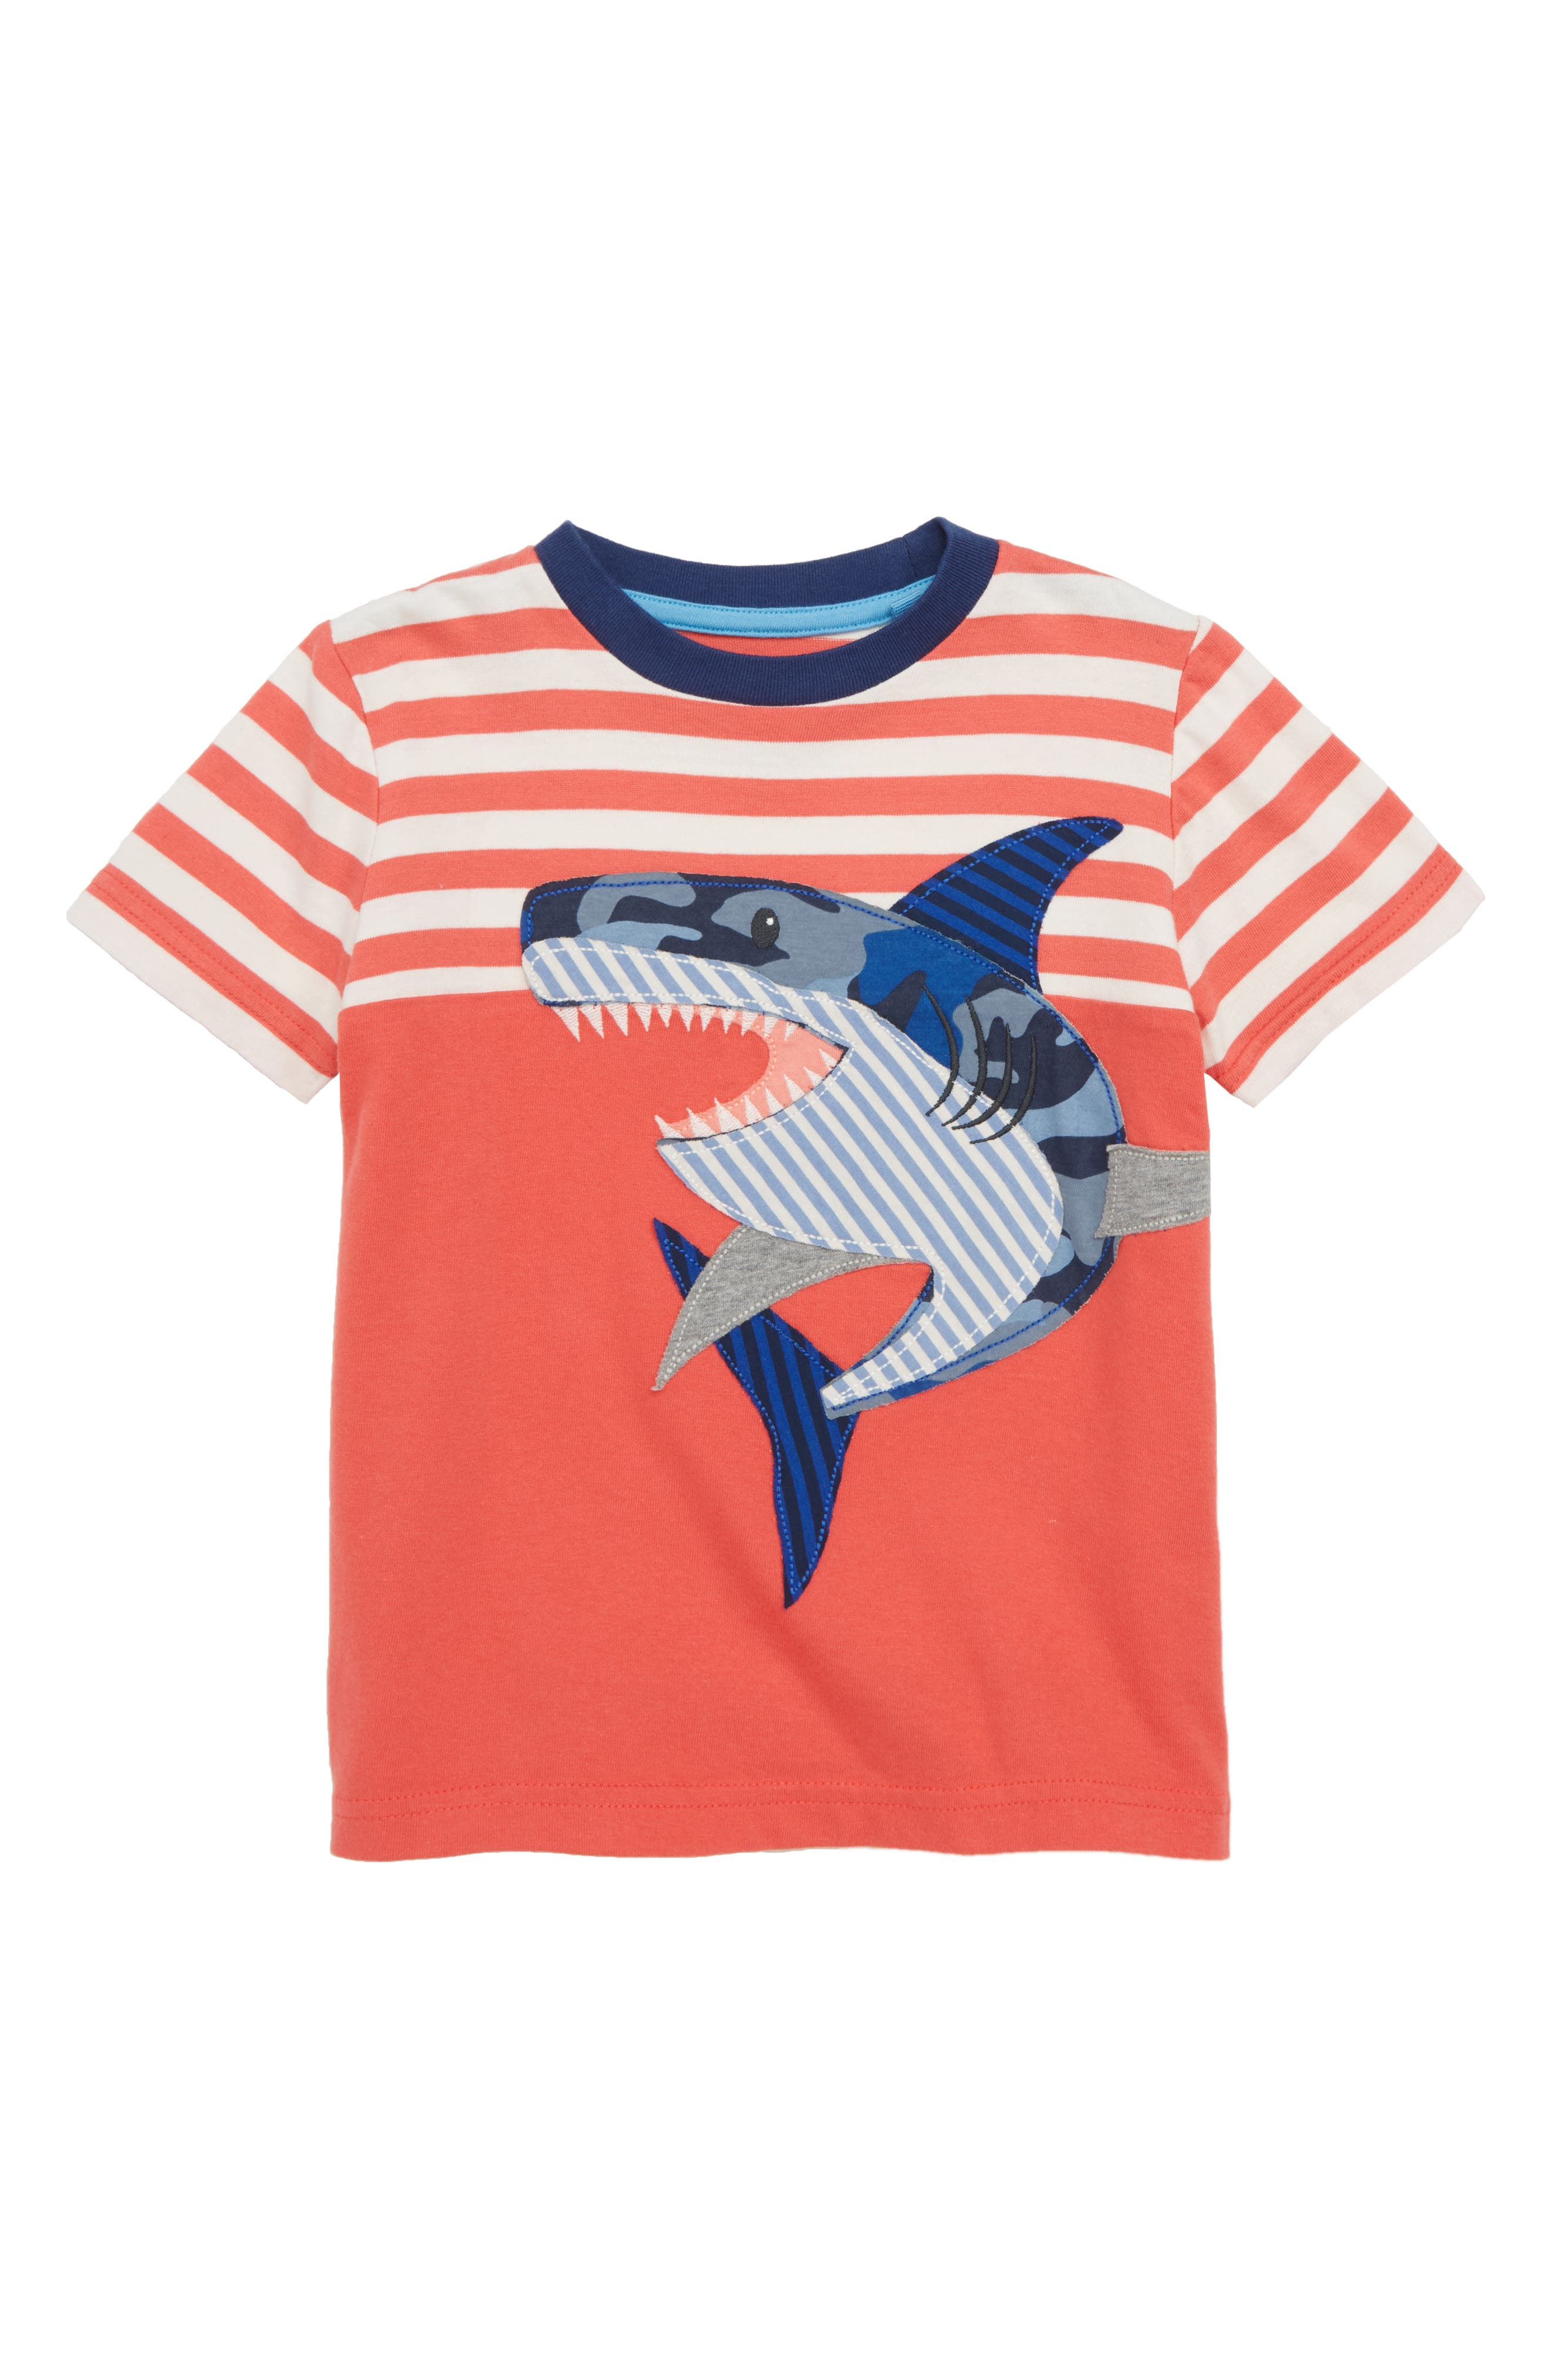 Shark Appliqué T-Shirt,                         Main,                         color, Jam Red/ Ecru Shark